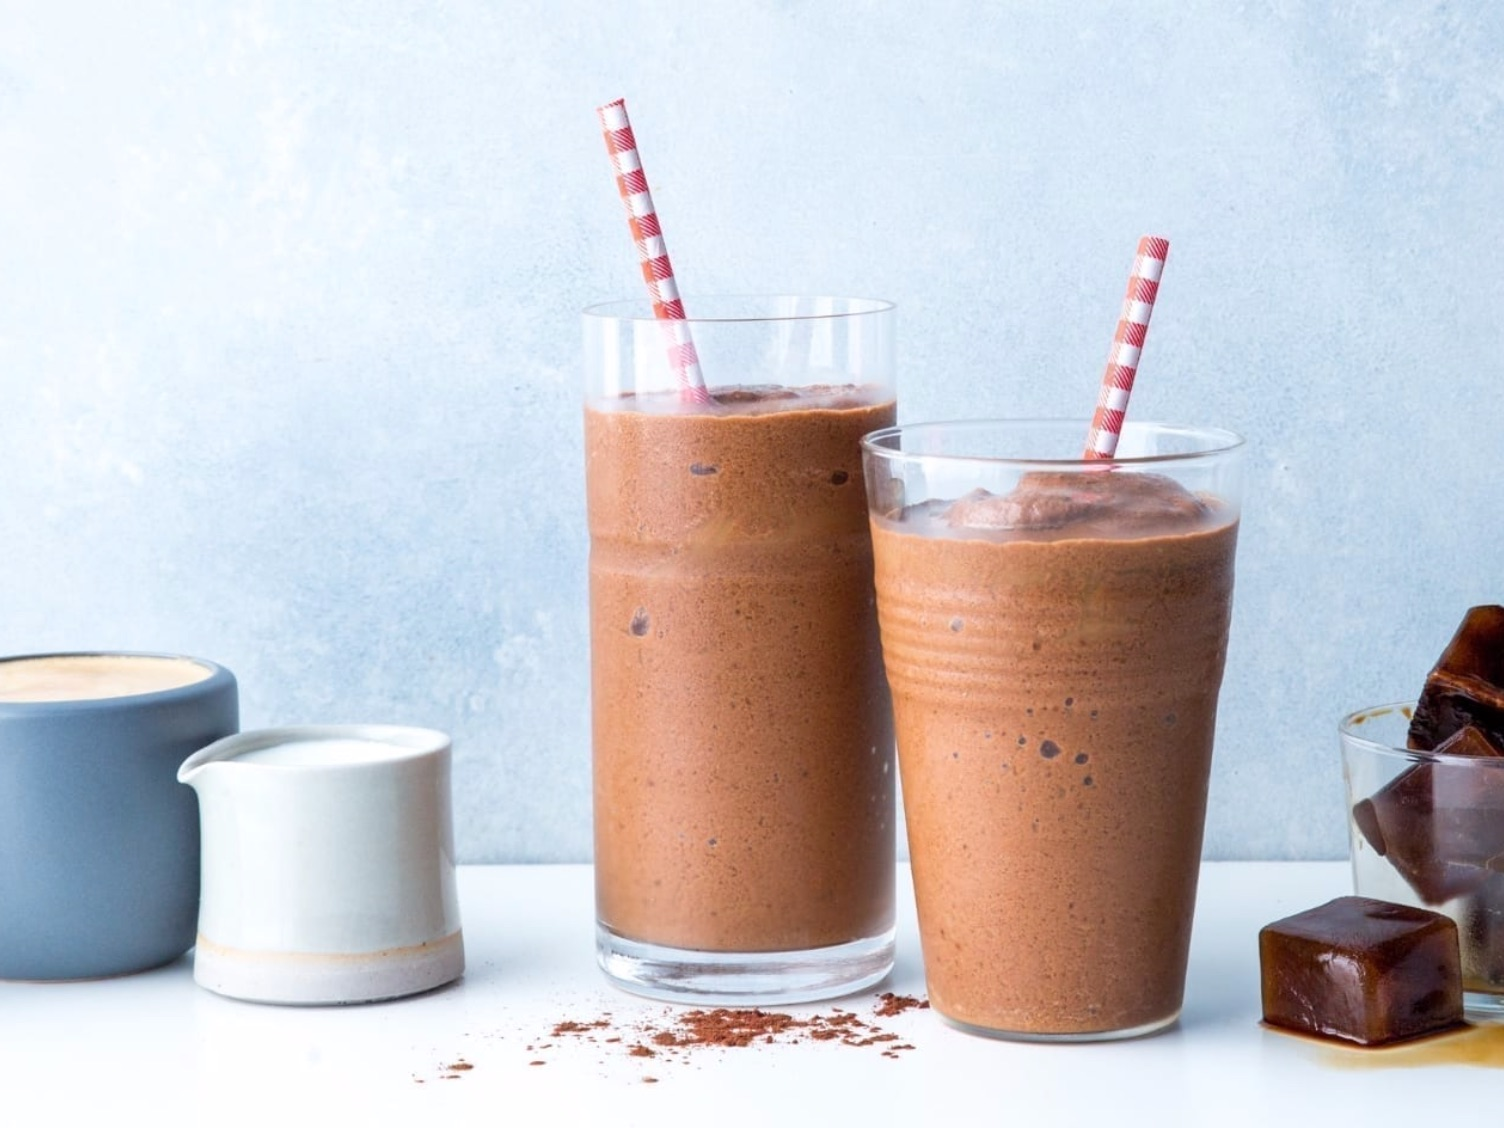 Cold Brew Mocha Smoothie   Ingredients  310ml cold brew coffee, frozen into cubes  1/2 cup 0% plain Greek yogurt  1/2 cup 2% milk or unsweetened almond milk  2 medjool dates, pitted  1 1/2 tablespoons unsweetened cocoa powder  1/2 teaspoon vanilla extract  Add in a scoop of whey/vegan protein powder for an extra 20-25g of protein  Calories: 154 Fat: 3g Carbohydrate: 26g Protein: 9g (Add whey/vegan powder = 29-35g protein)